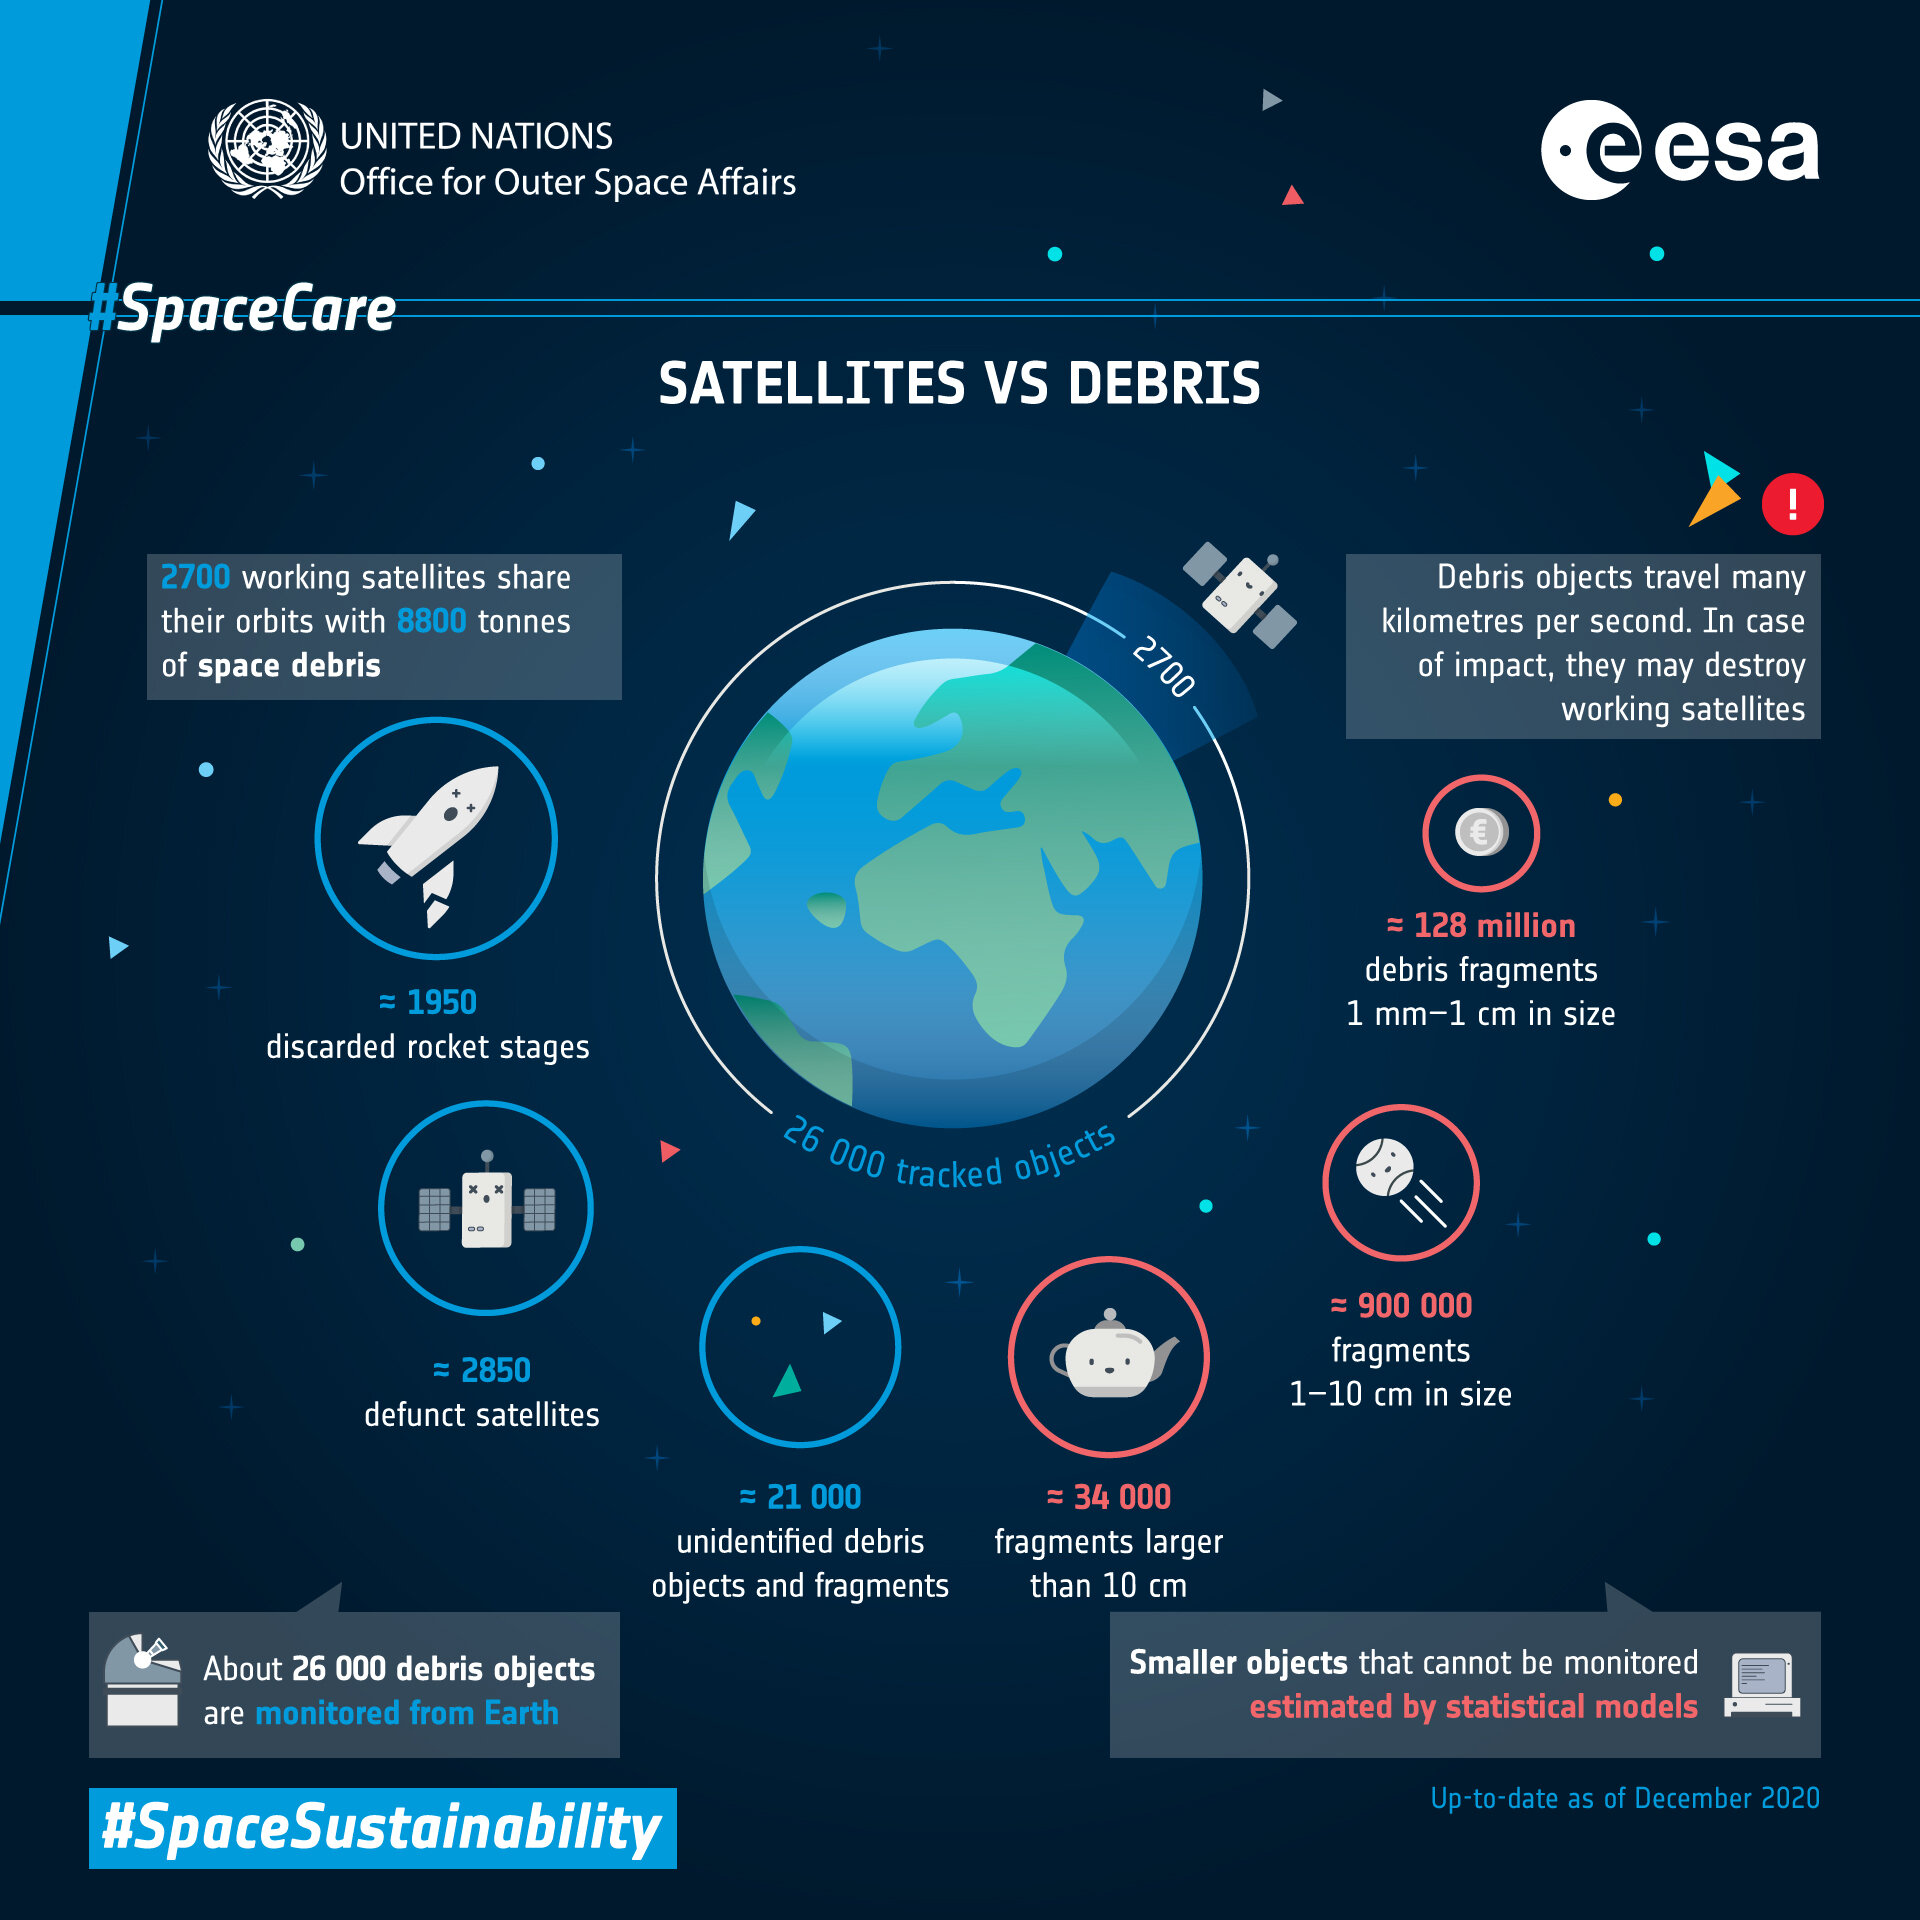 What are satellites up against when it comes to space debris?